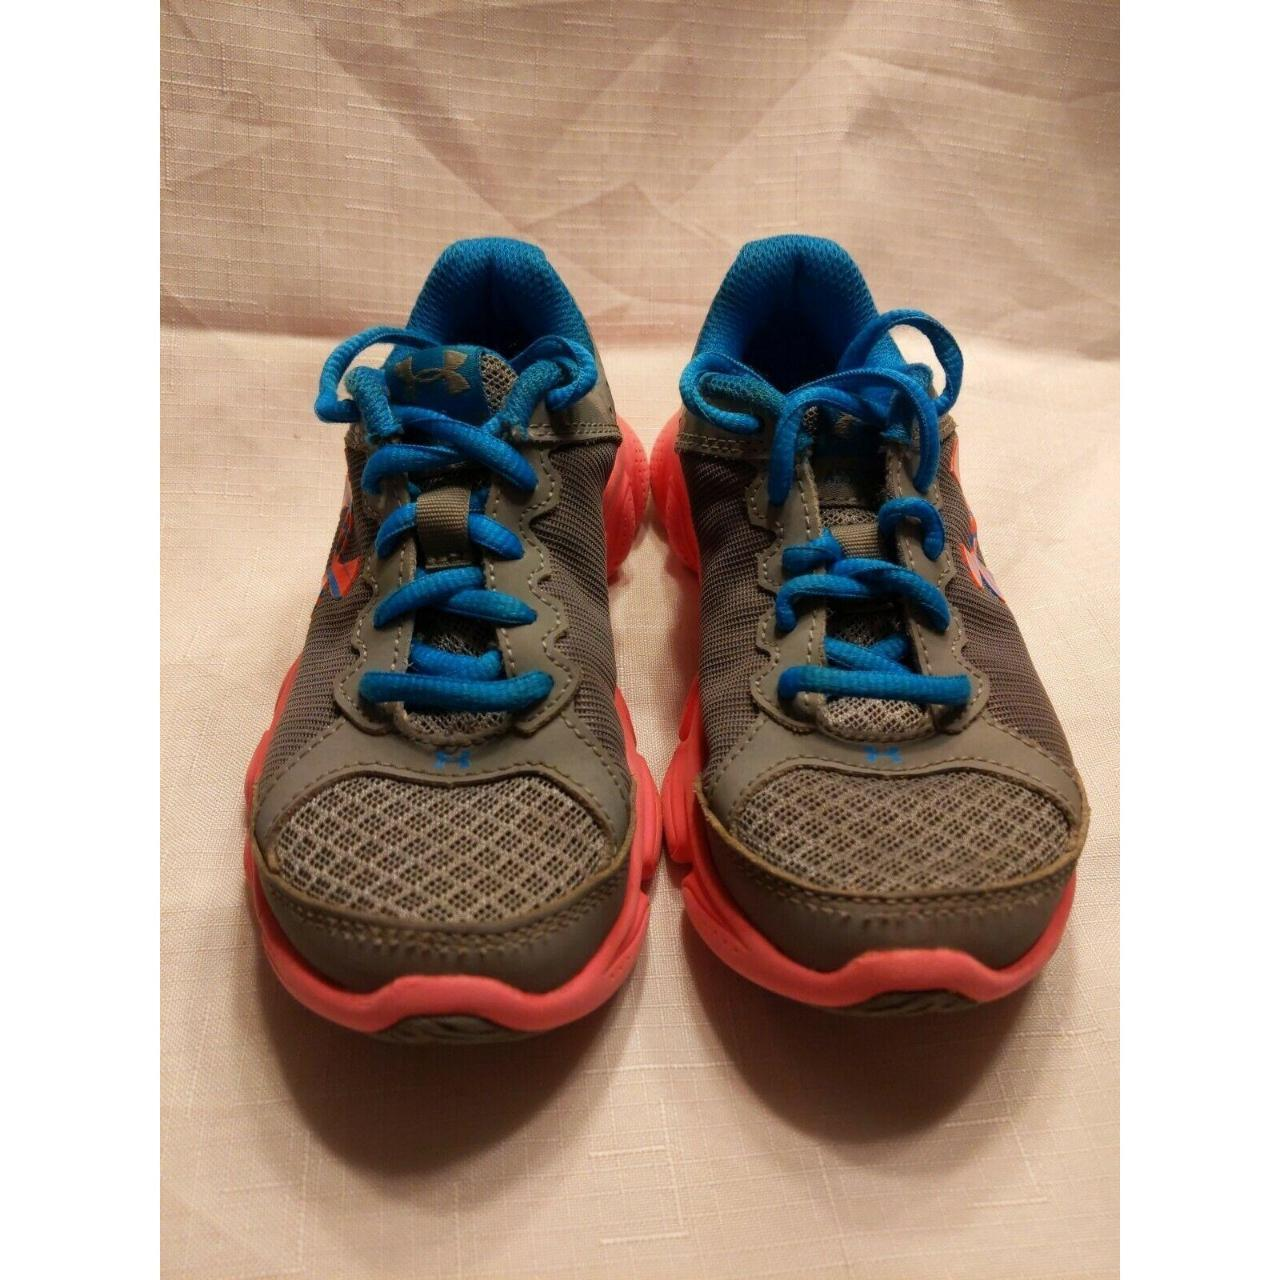 Product Image 1 - New Under Armour Girls GPS